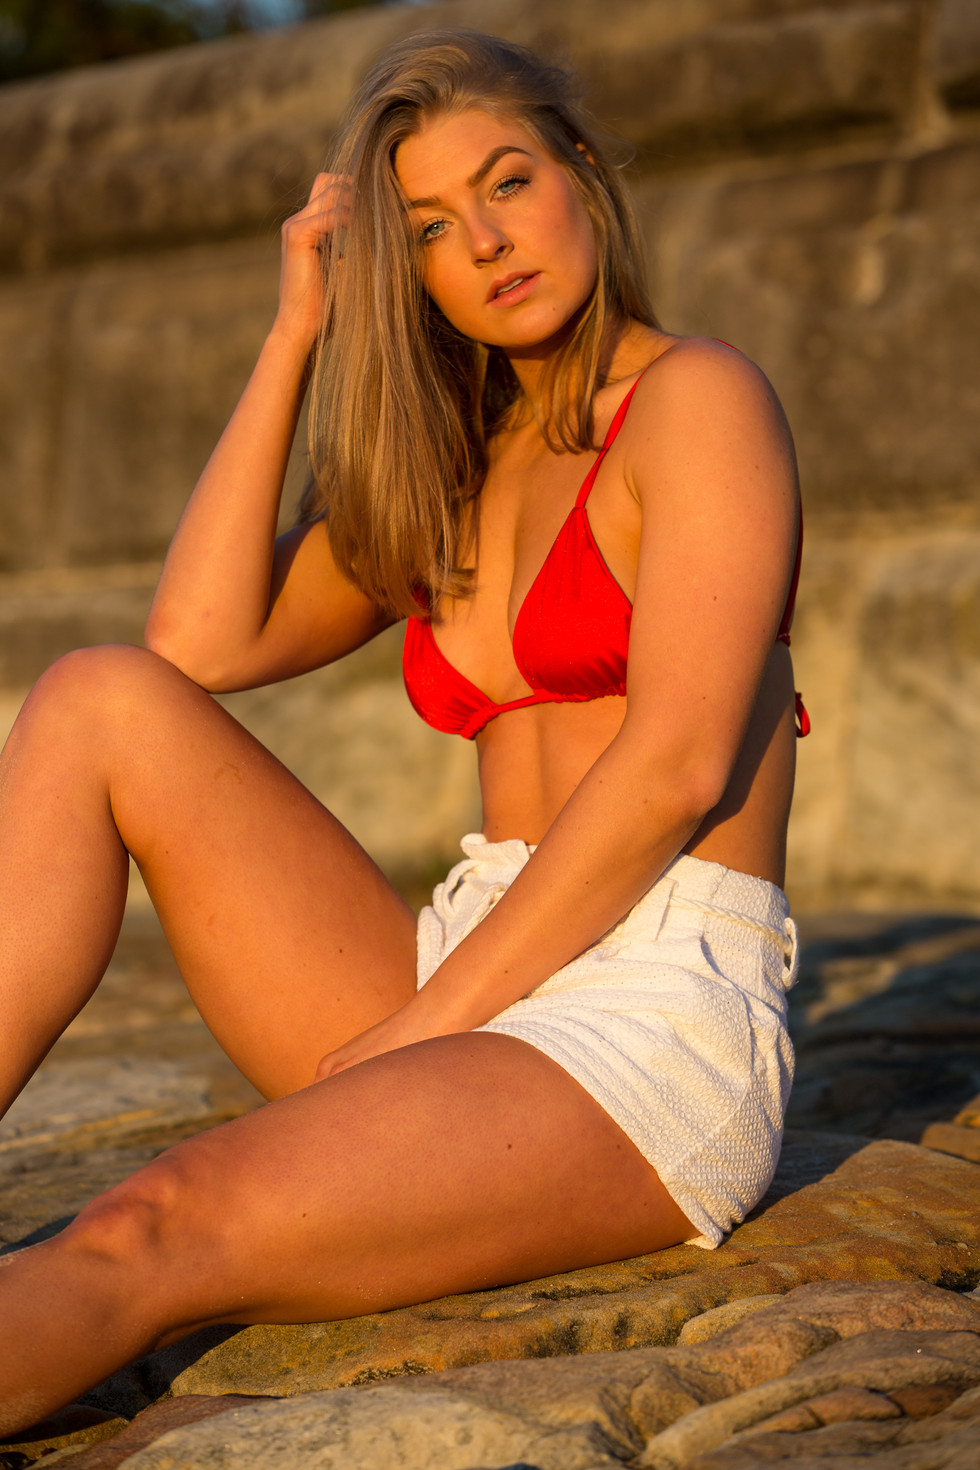 Felicia_by_CoogeePhotography-110713.jpg